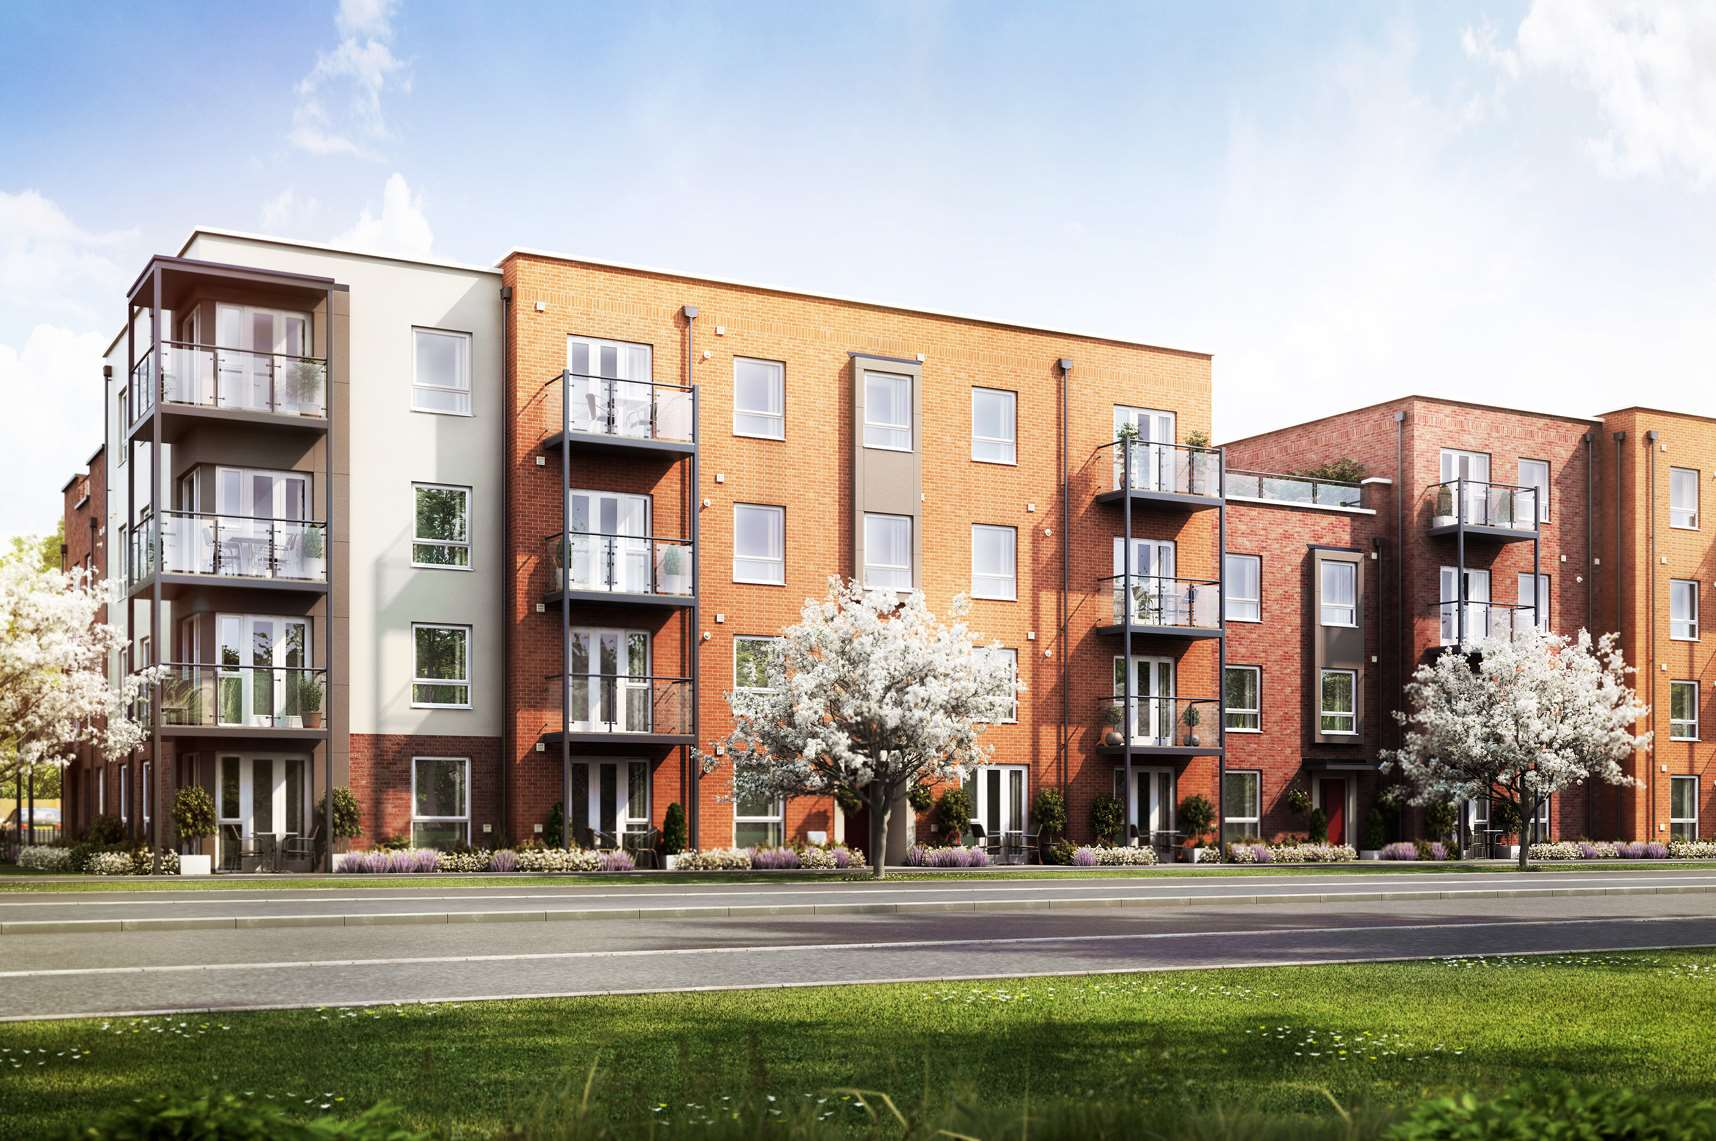 The first phase of apartments built by Barratt Homes in Castle Hill, Ebbsfleet, are about to go on sale